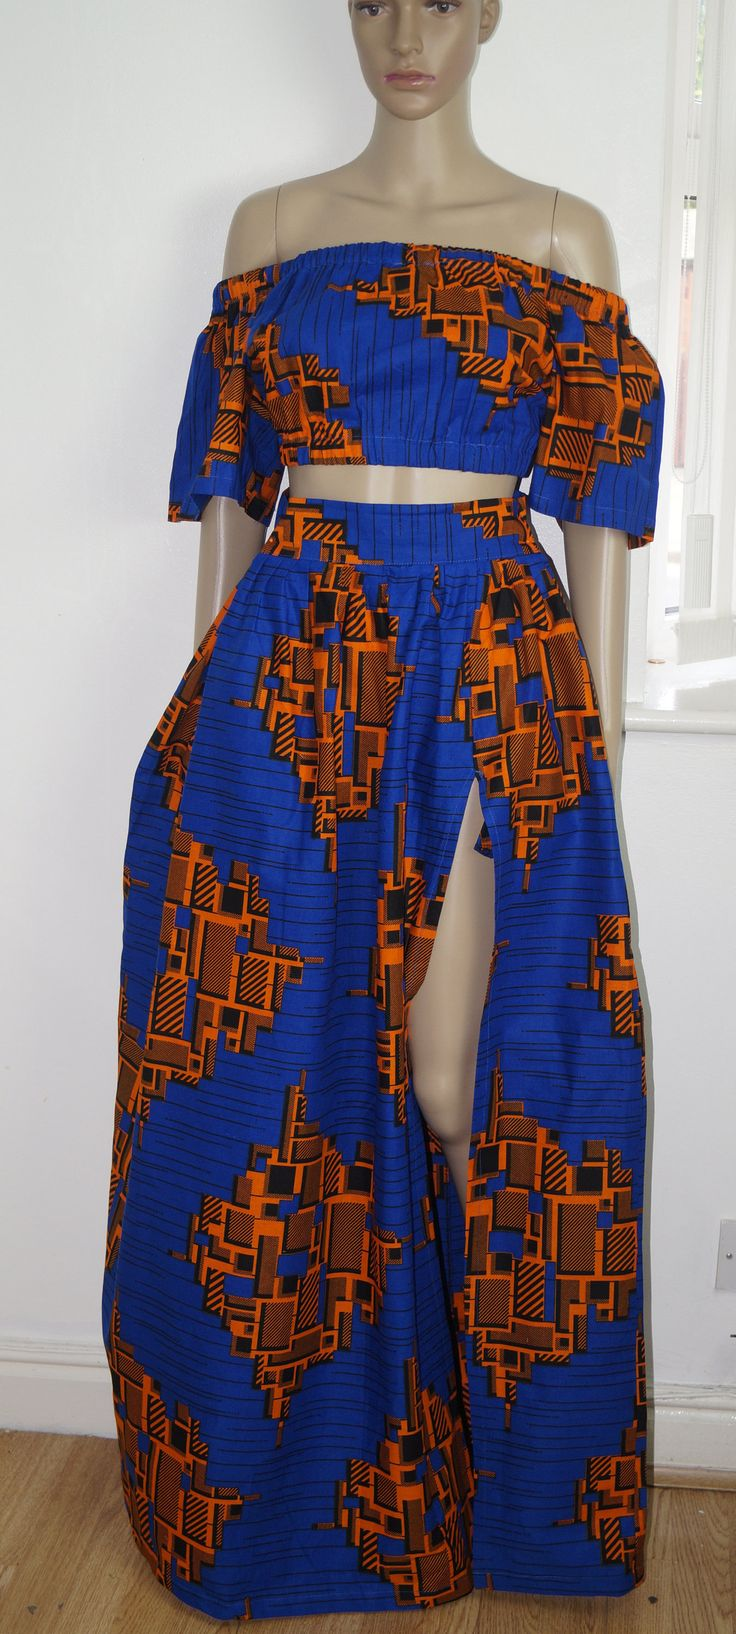 off shoulder top co-ord, off shoulder top, flare maxi skirt, ankara skirt, ankara top, cold shoulder off, top, retro skirt, by MADKollection on Etsy